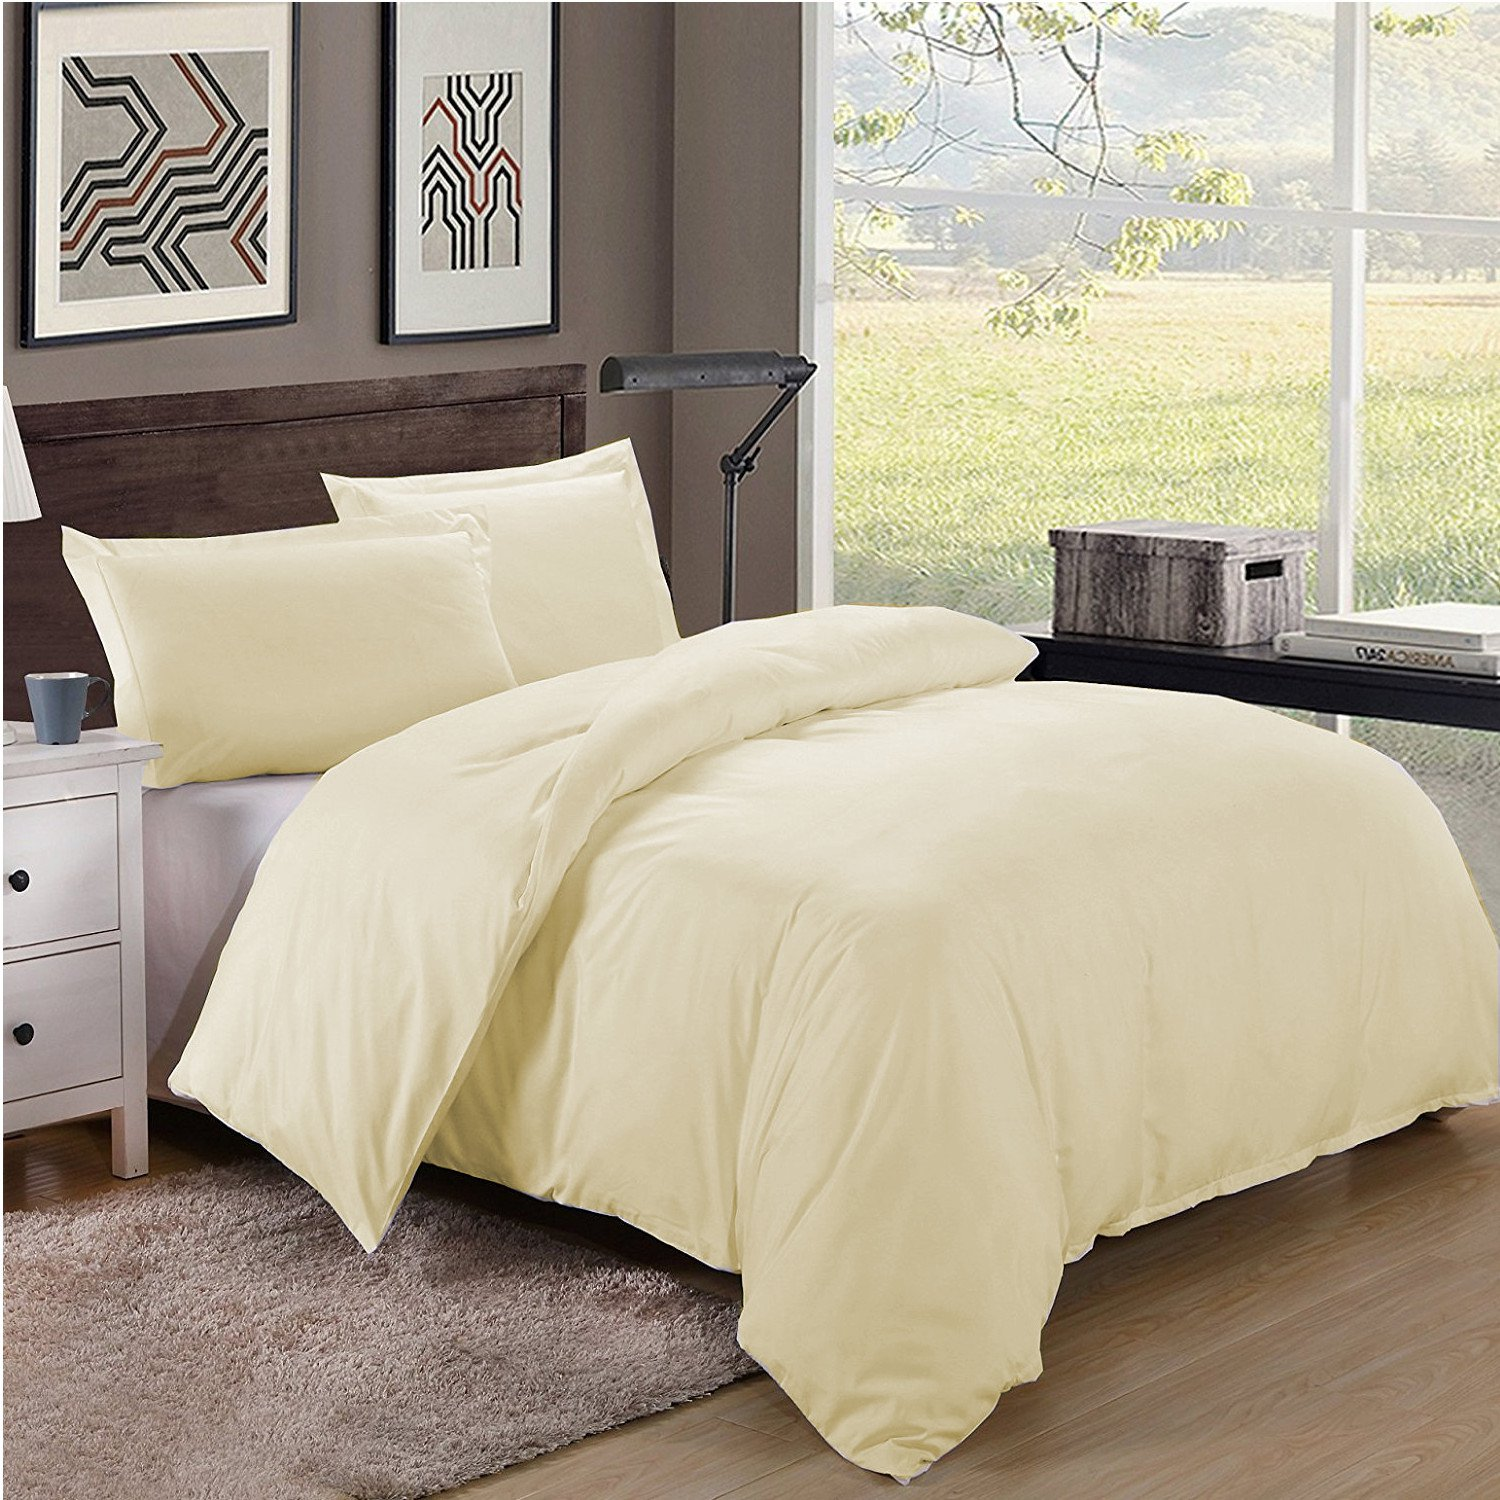 Twin/Twin XL Size 600TC 100% Egyptian Cotton ultra soft Duvet Cover 3pcs Set ,Cream